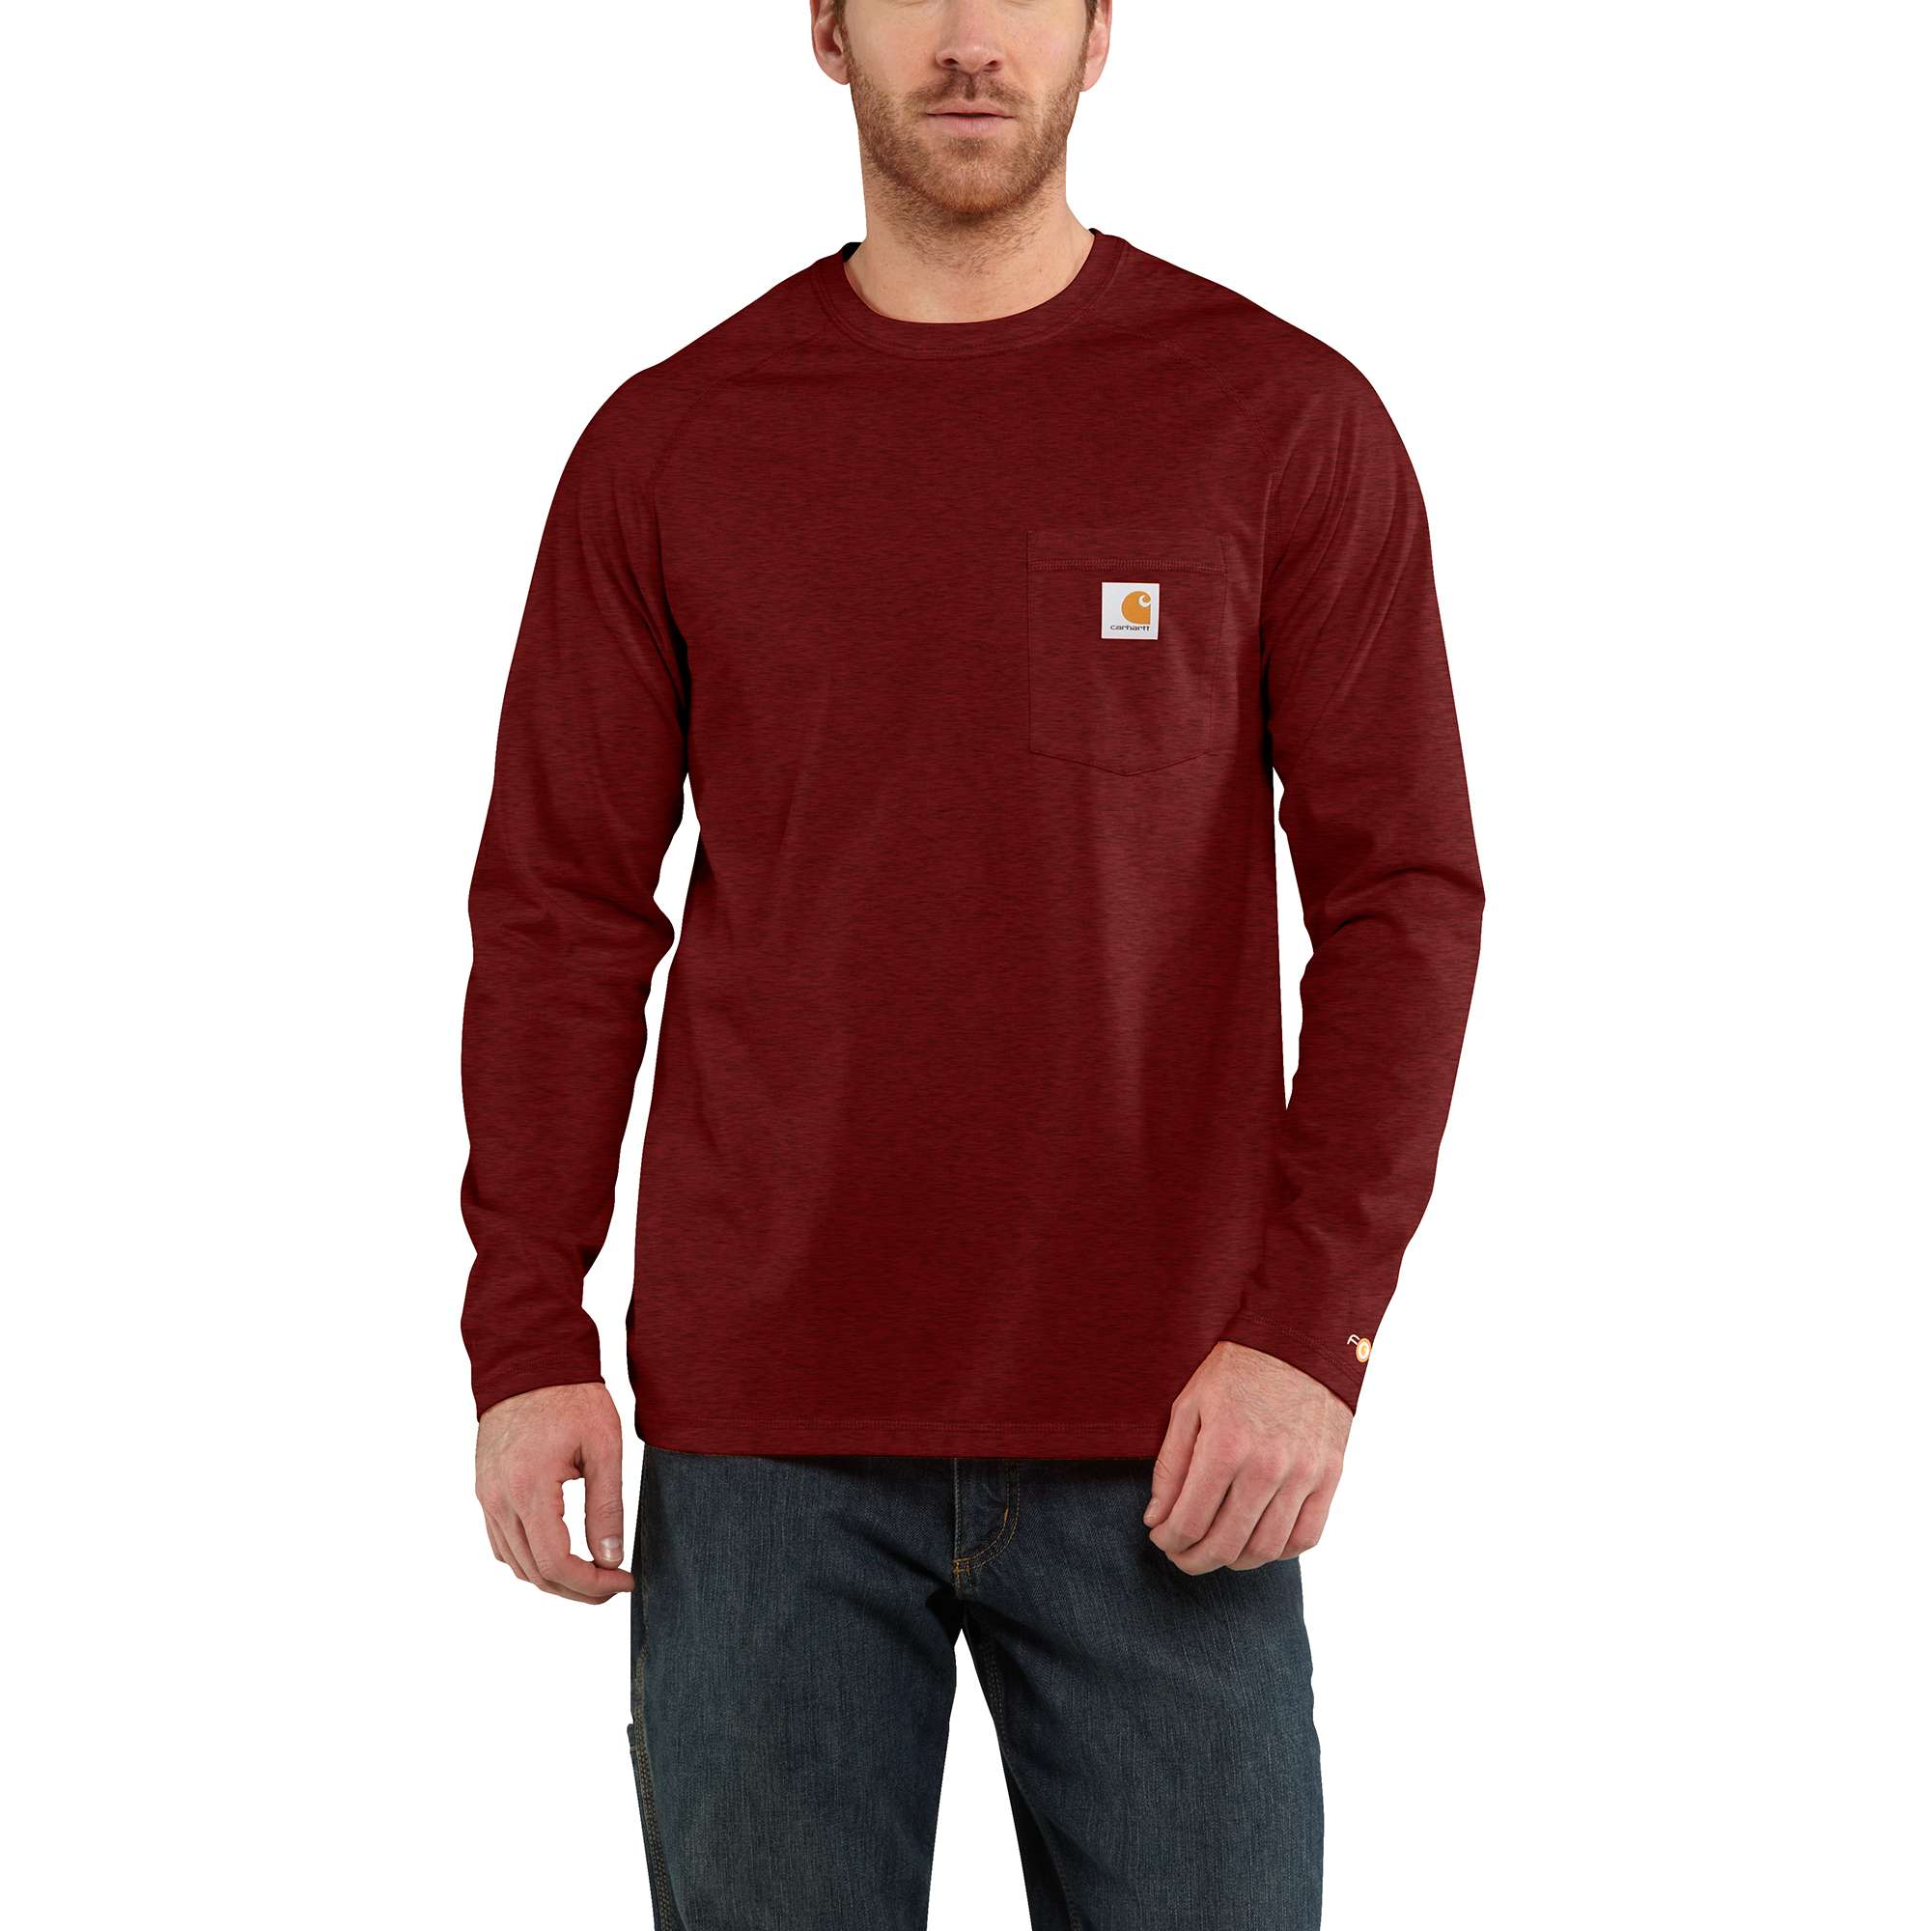 Men's Long Sleeve Force Cotton Tee, Brown/Red, swatch